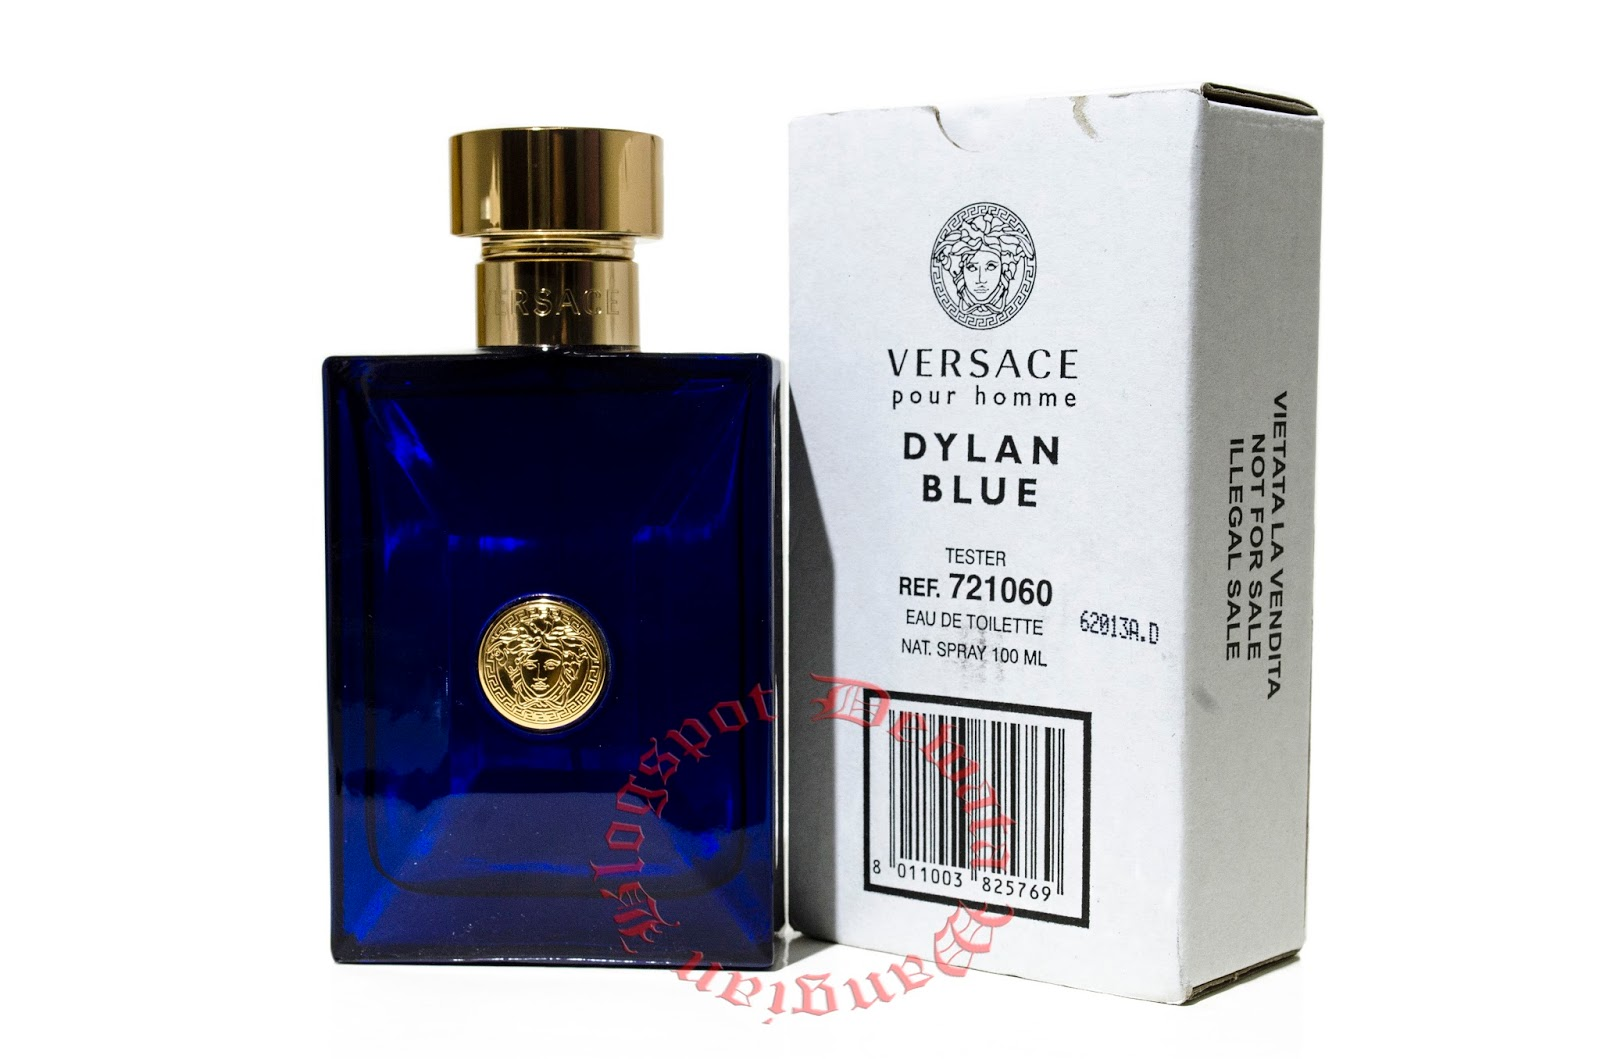 18dd59334c3f VERSACE Pour Homme Dylan Blue Tester Perfume